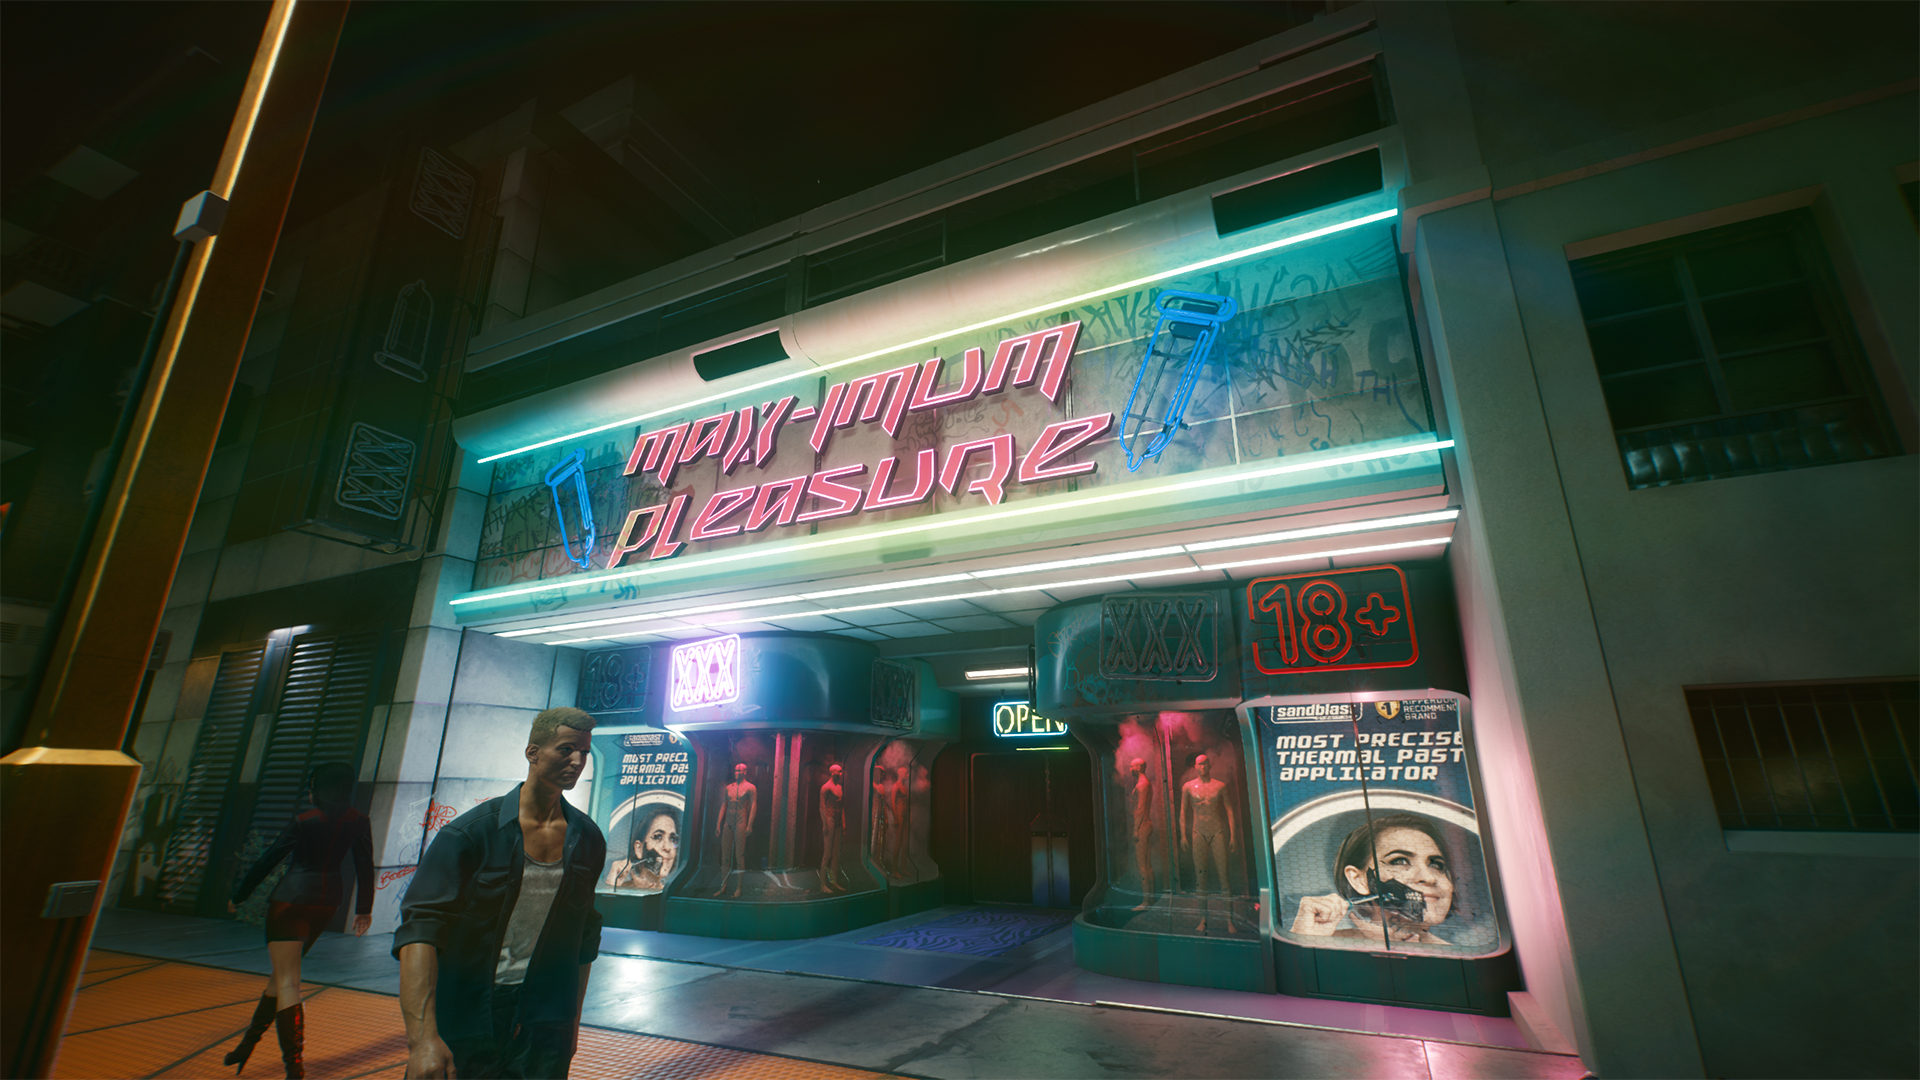 Cyberpunk 2077 I Fought The Law choices